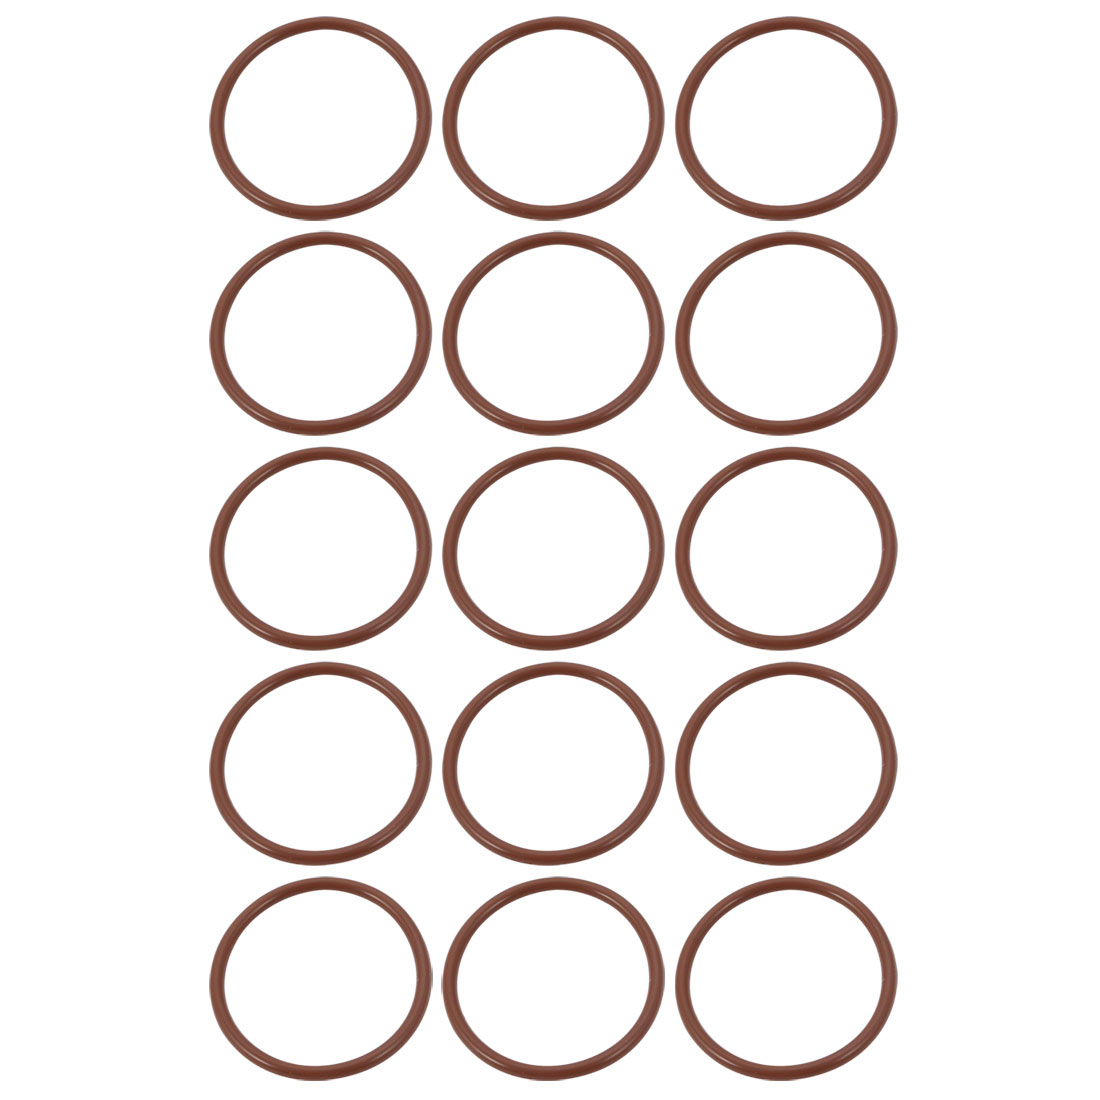 15pcs Brown 29mm Outer Dia 1.9mm Thickness Sealing Ring O-shape Rubber Grommet